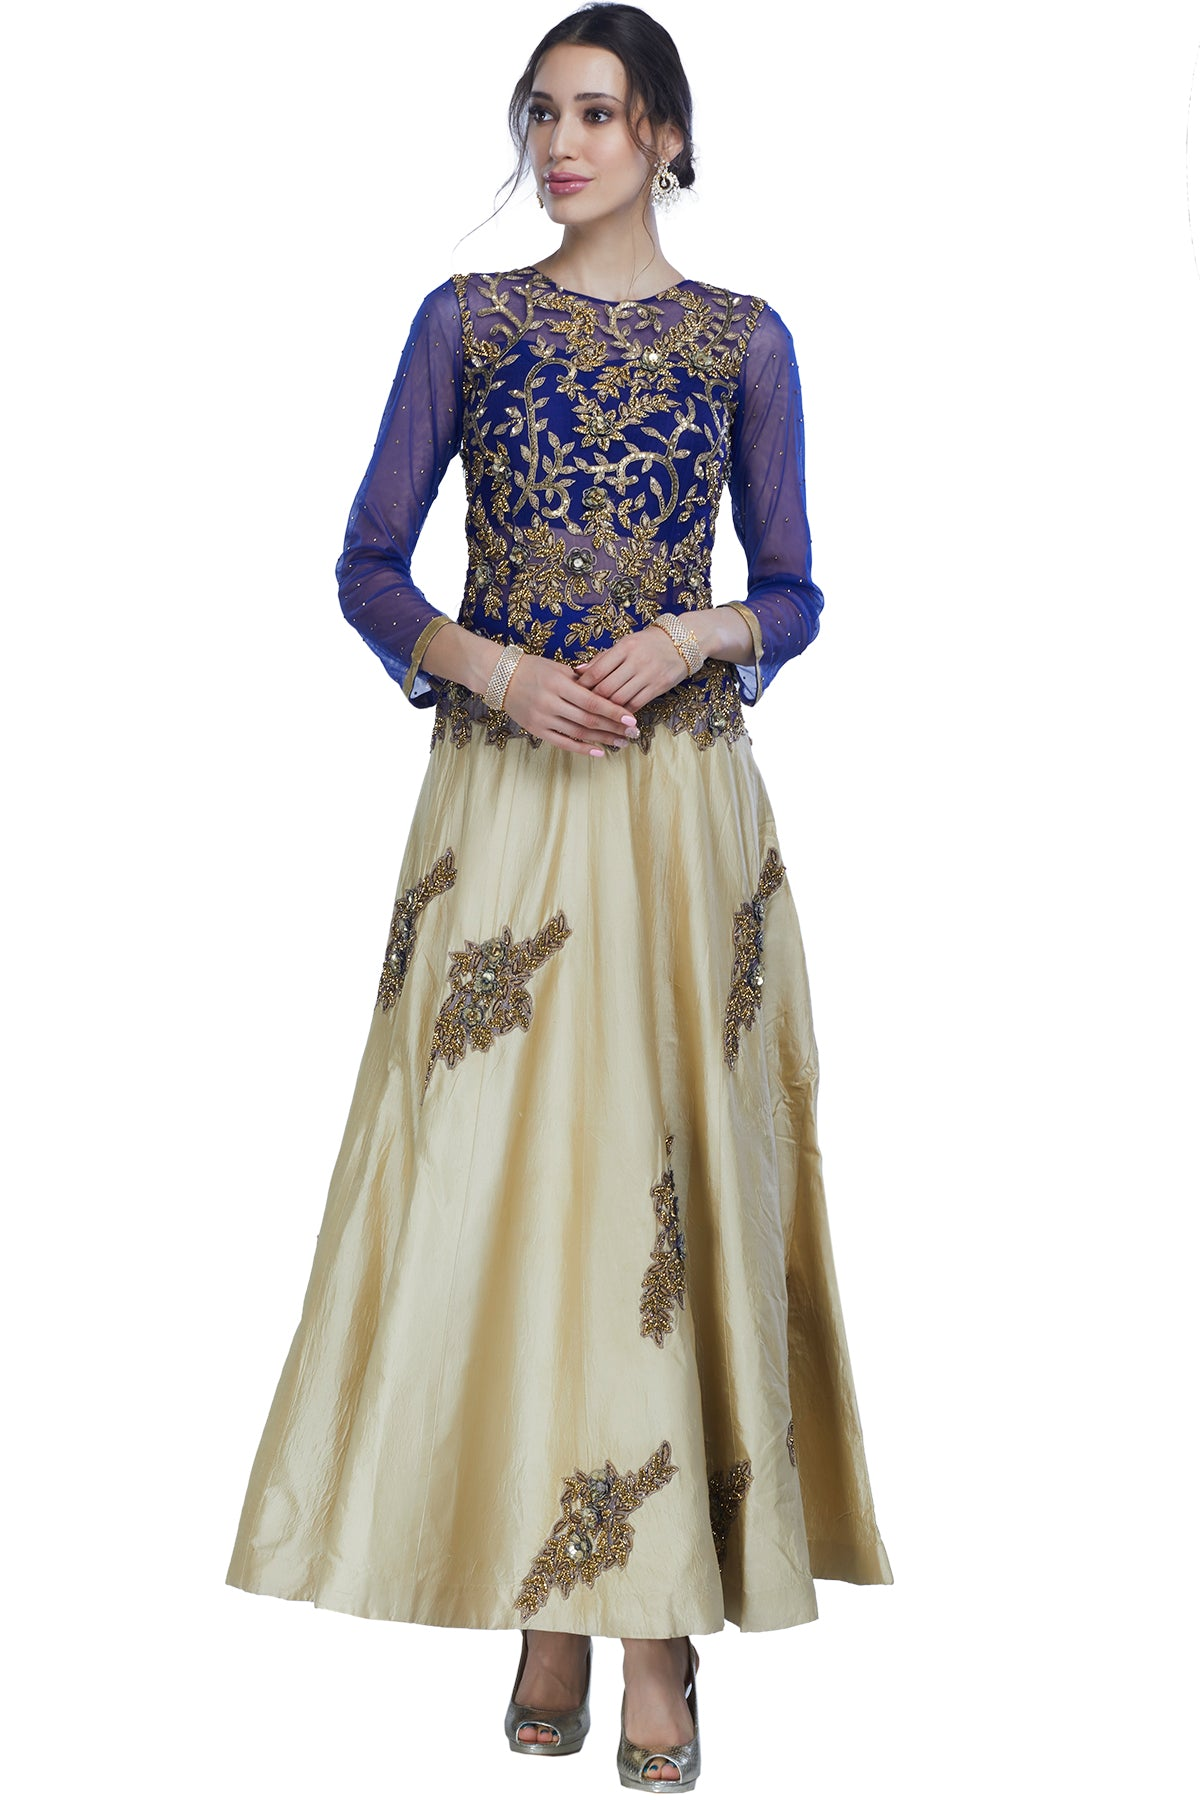 Blue and beige full sleeves indo-western gown with gold embroidery and patchwork sets a bar and makes a statement of its own.